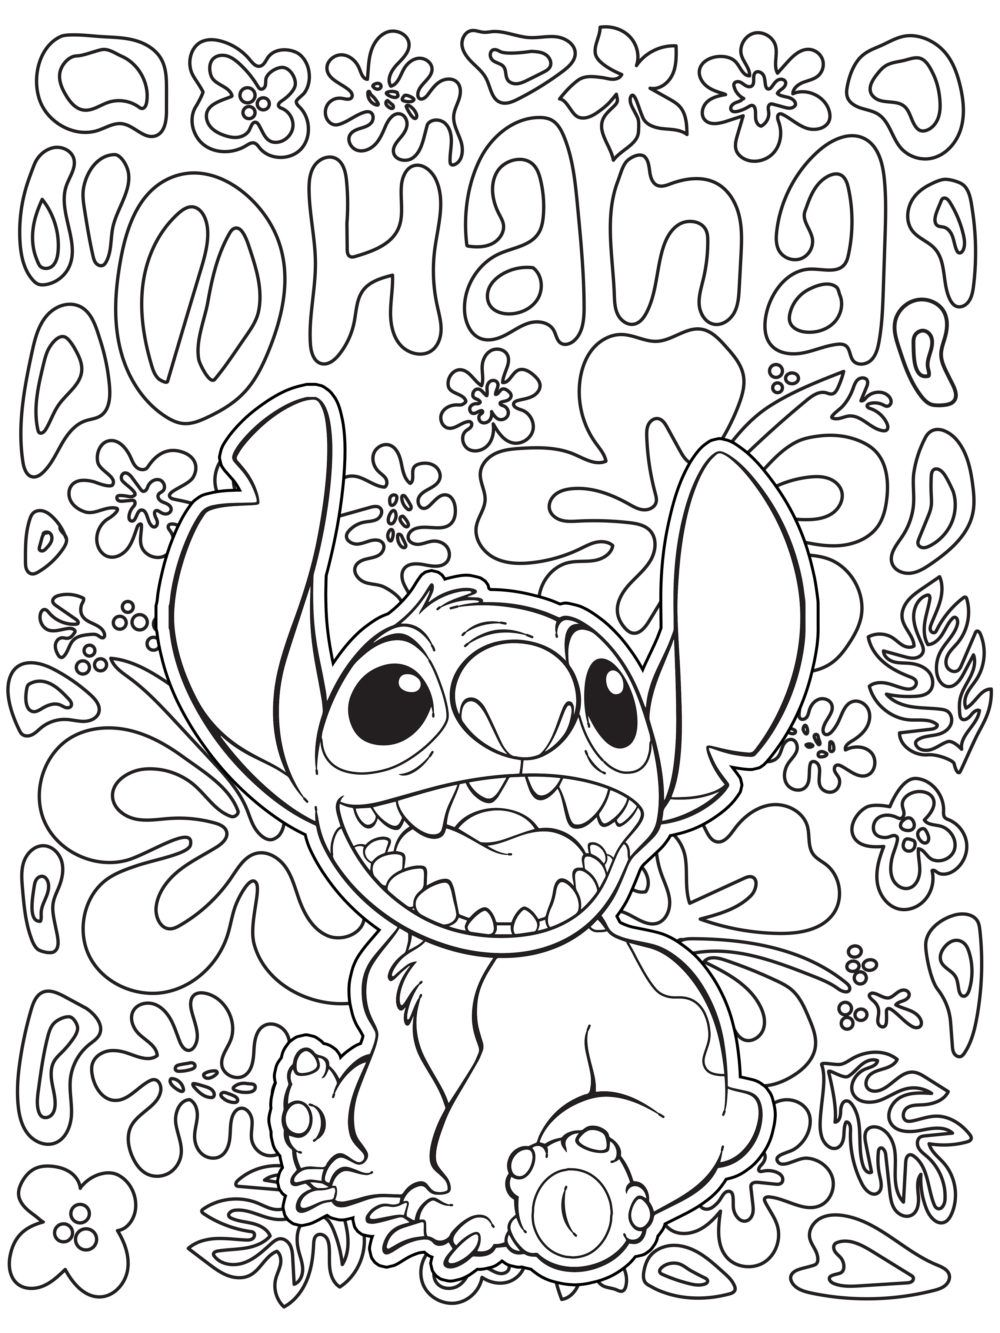 Celebrate National Coloring Book Day With | Ausmalbilder, Disney ...